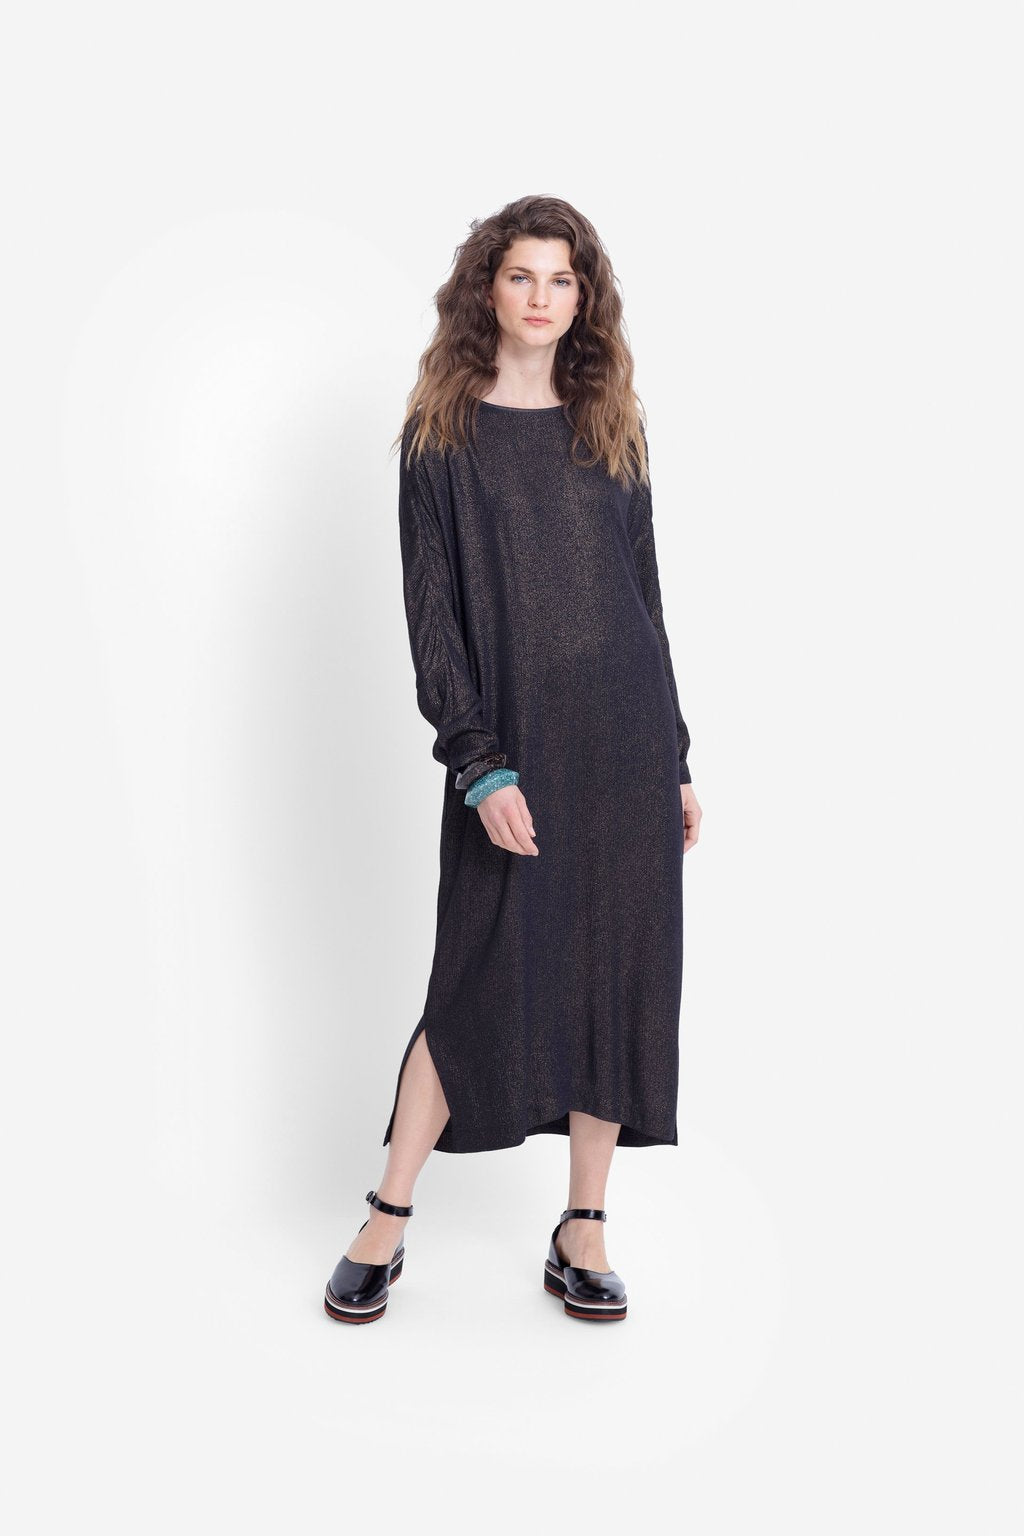 Elk Espen Dress A3444 Metallic Moonlight